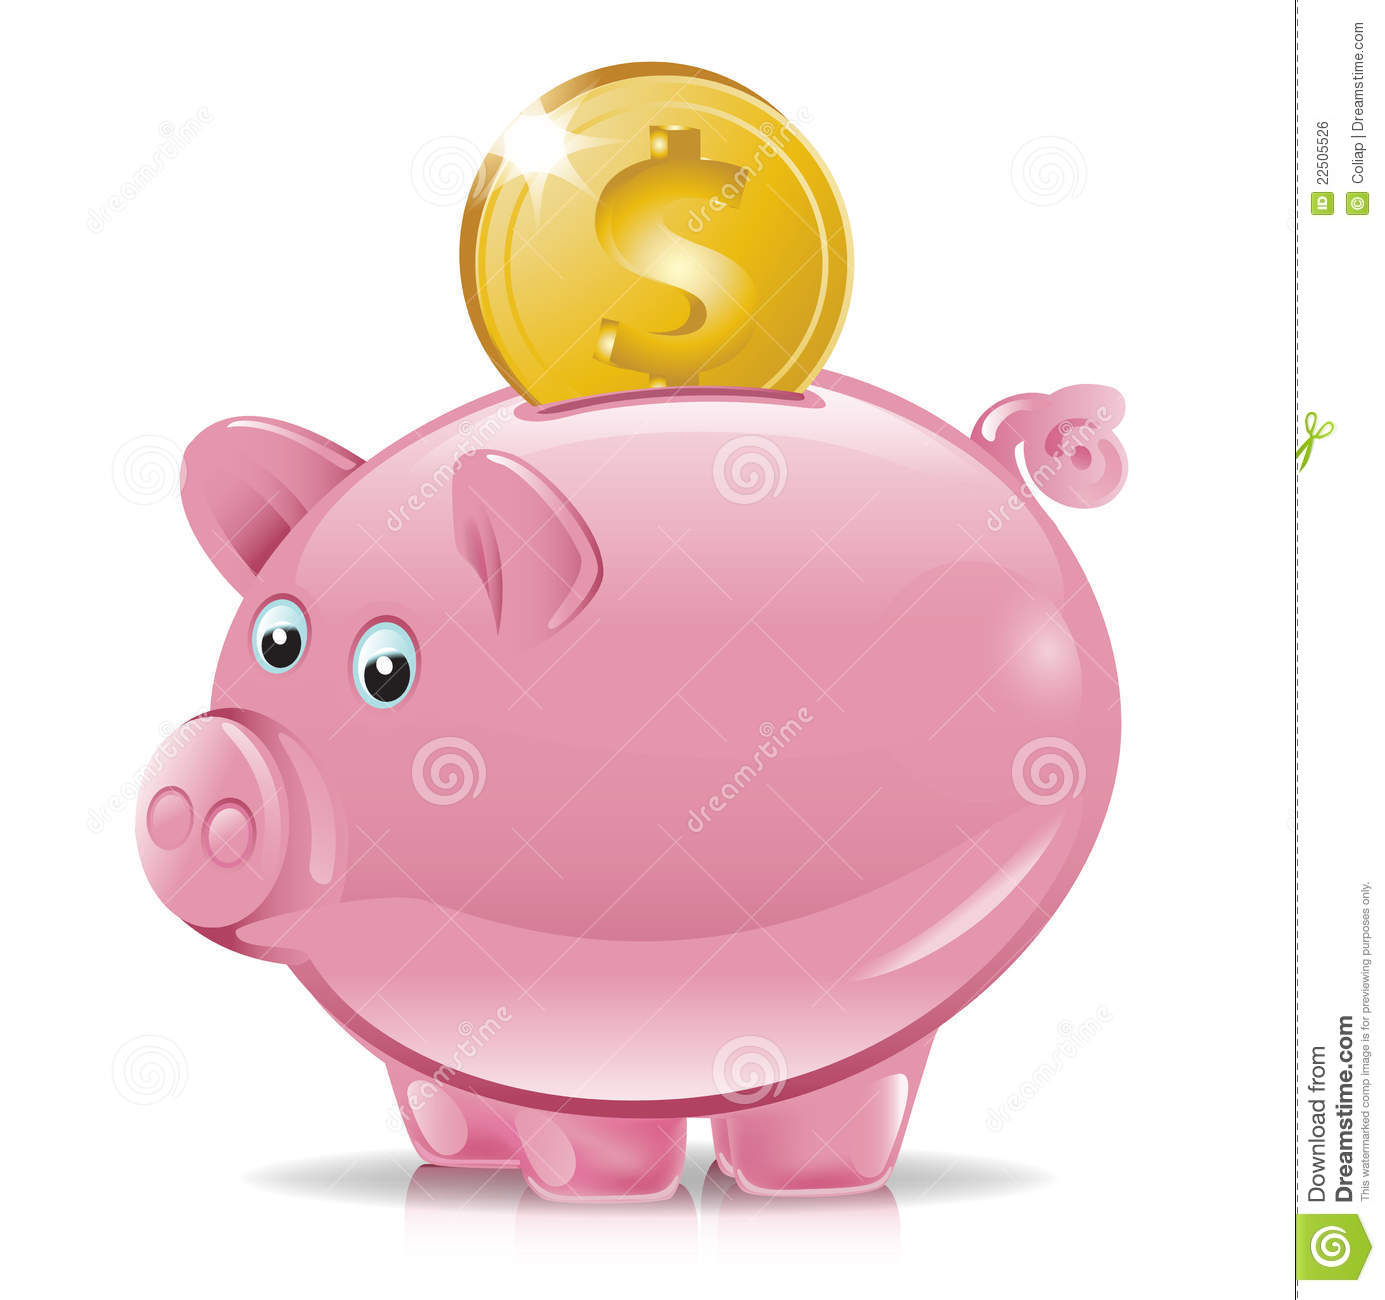 Piggy bank with golden coin falling.